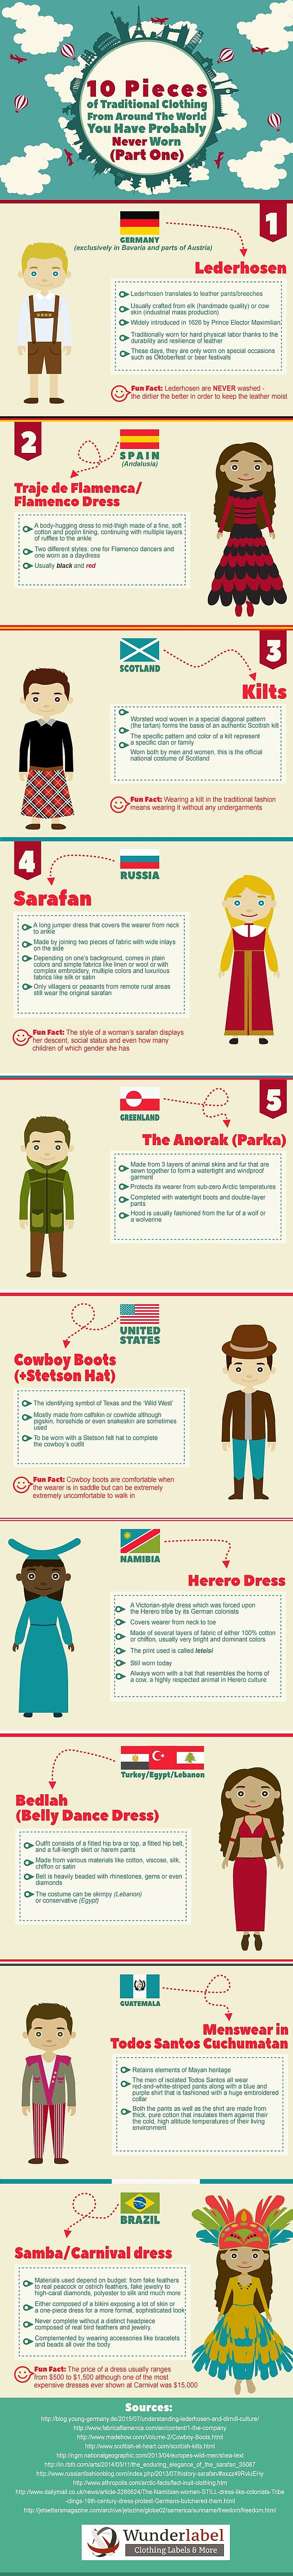 [Infographic] 10 Pieces of Traditional Clothing You Have NEVER Worn